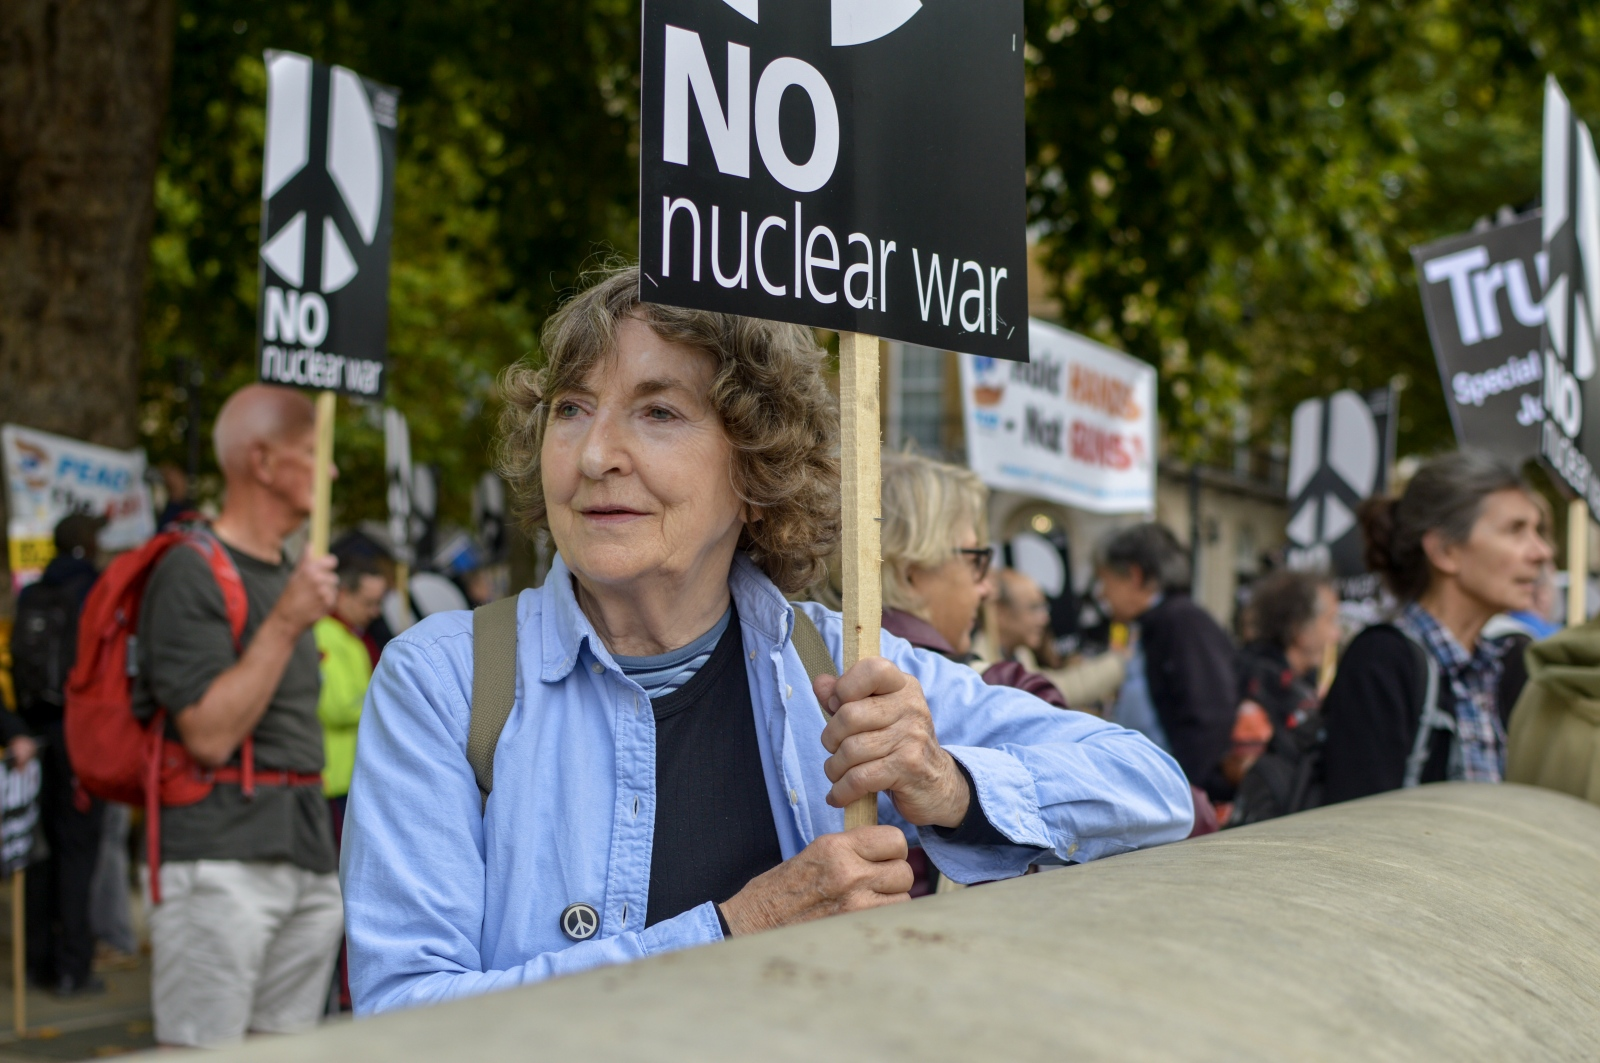 An old lady holds a sign during a peaceful march against nuclear weapons held in front of Downing Street, London, April 2018